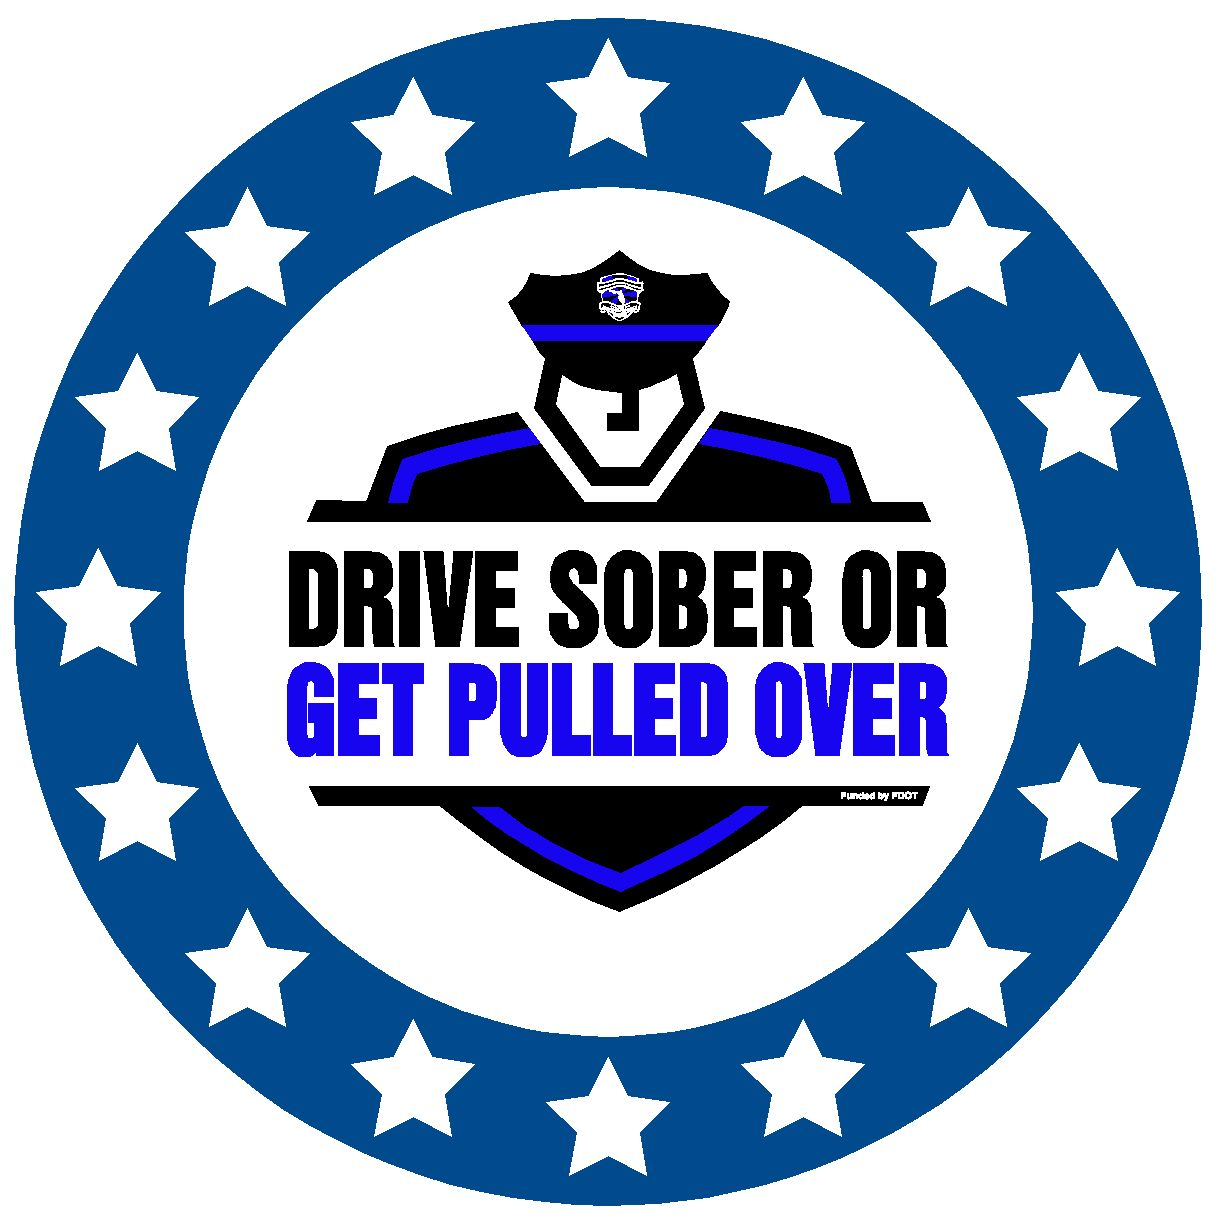 PHOTO: Drive Sober or Get Puled Over logo. (Photo Courtesy of Cape Coral Police Department)